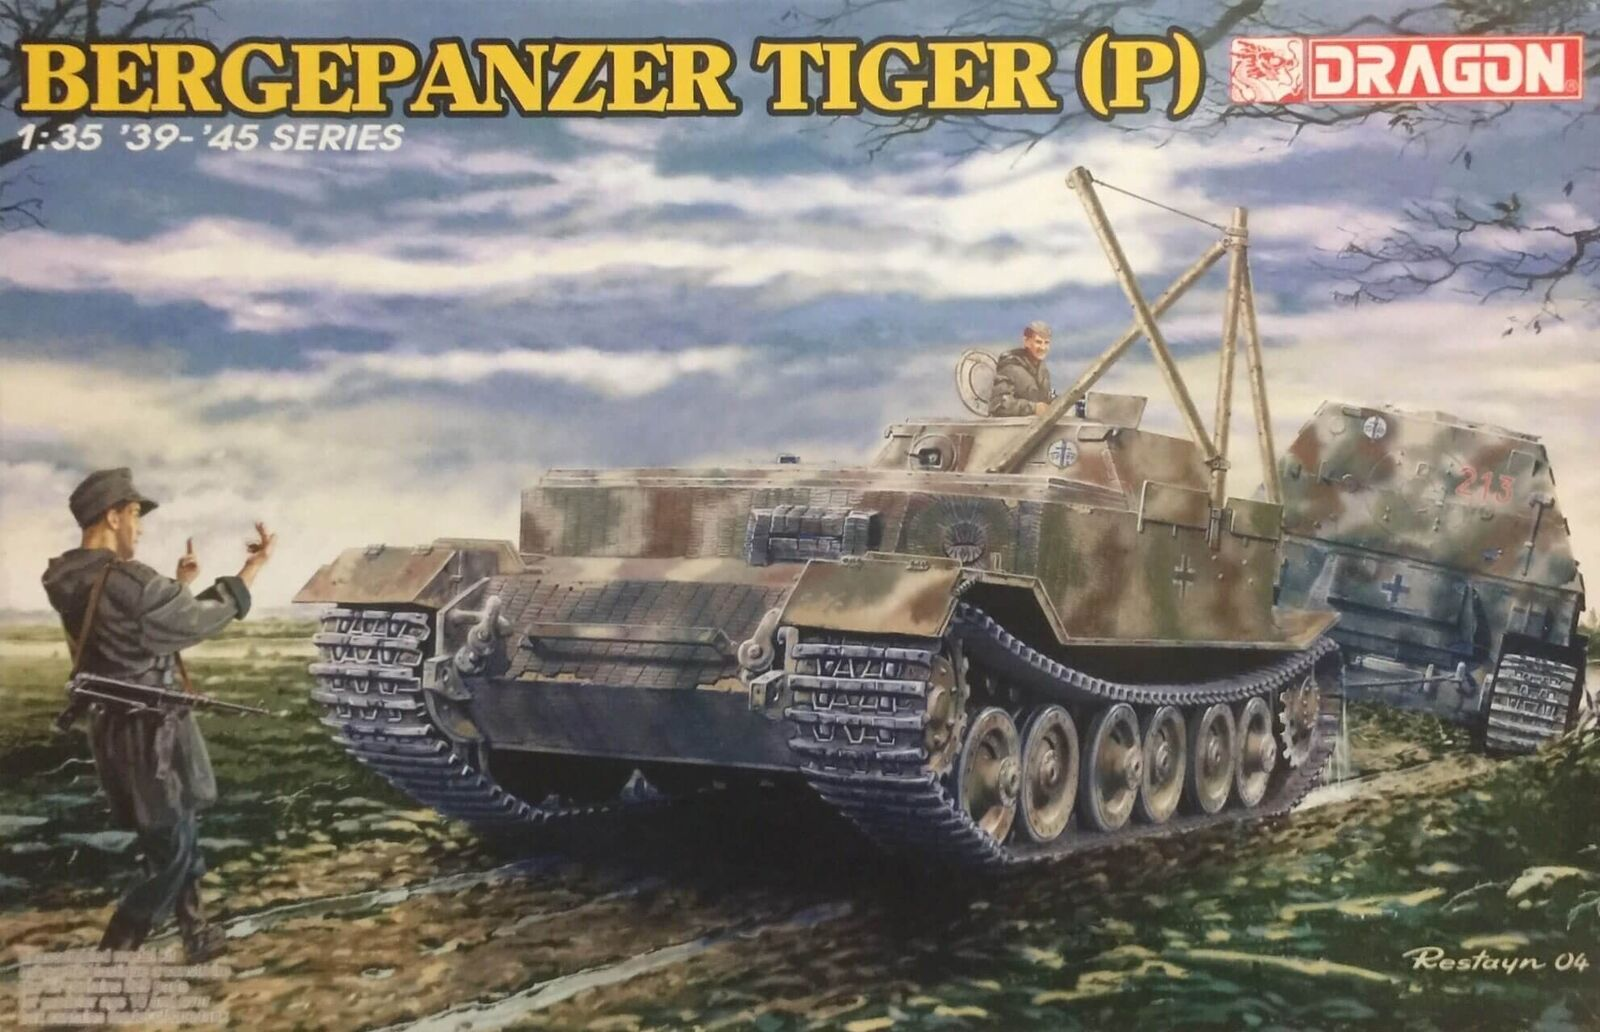 Dragon Bergepanzer Tiger (P) Ref 6226 Escala 1 35